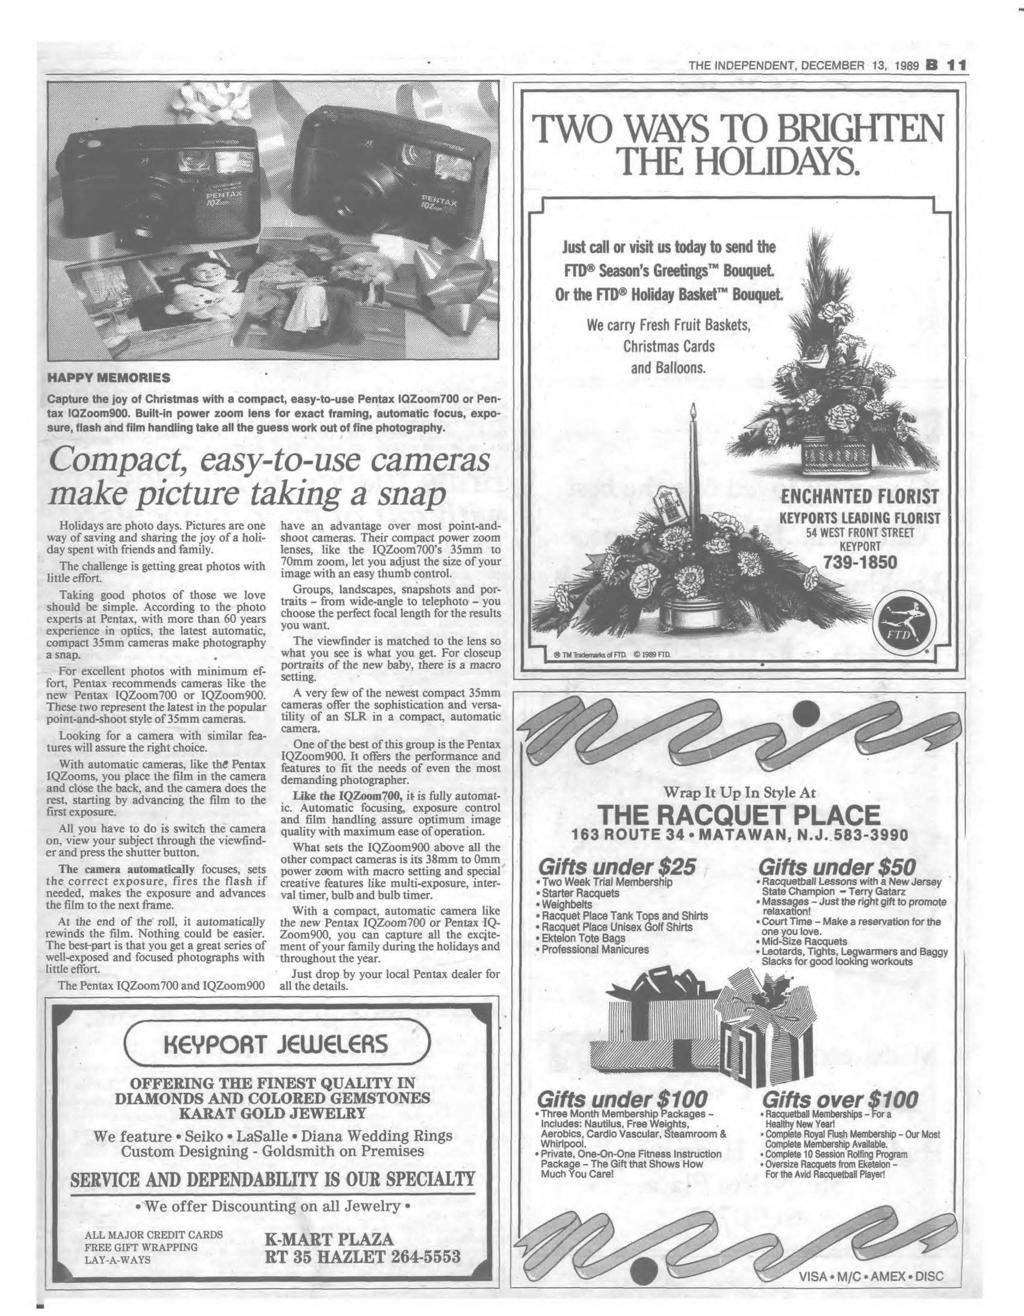 THE INDEPENDENT, DECEM BER 13, 1989 B 1 1 TWO WAYS TO BRIGHTEN THE HOLIDAYS.